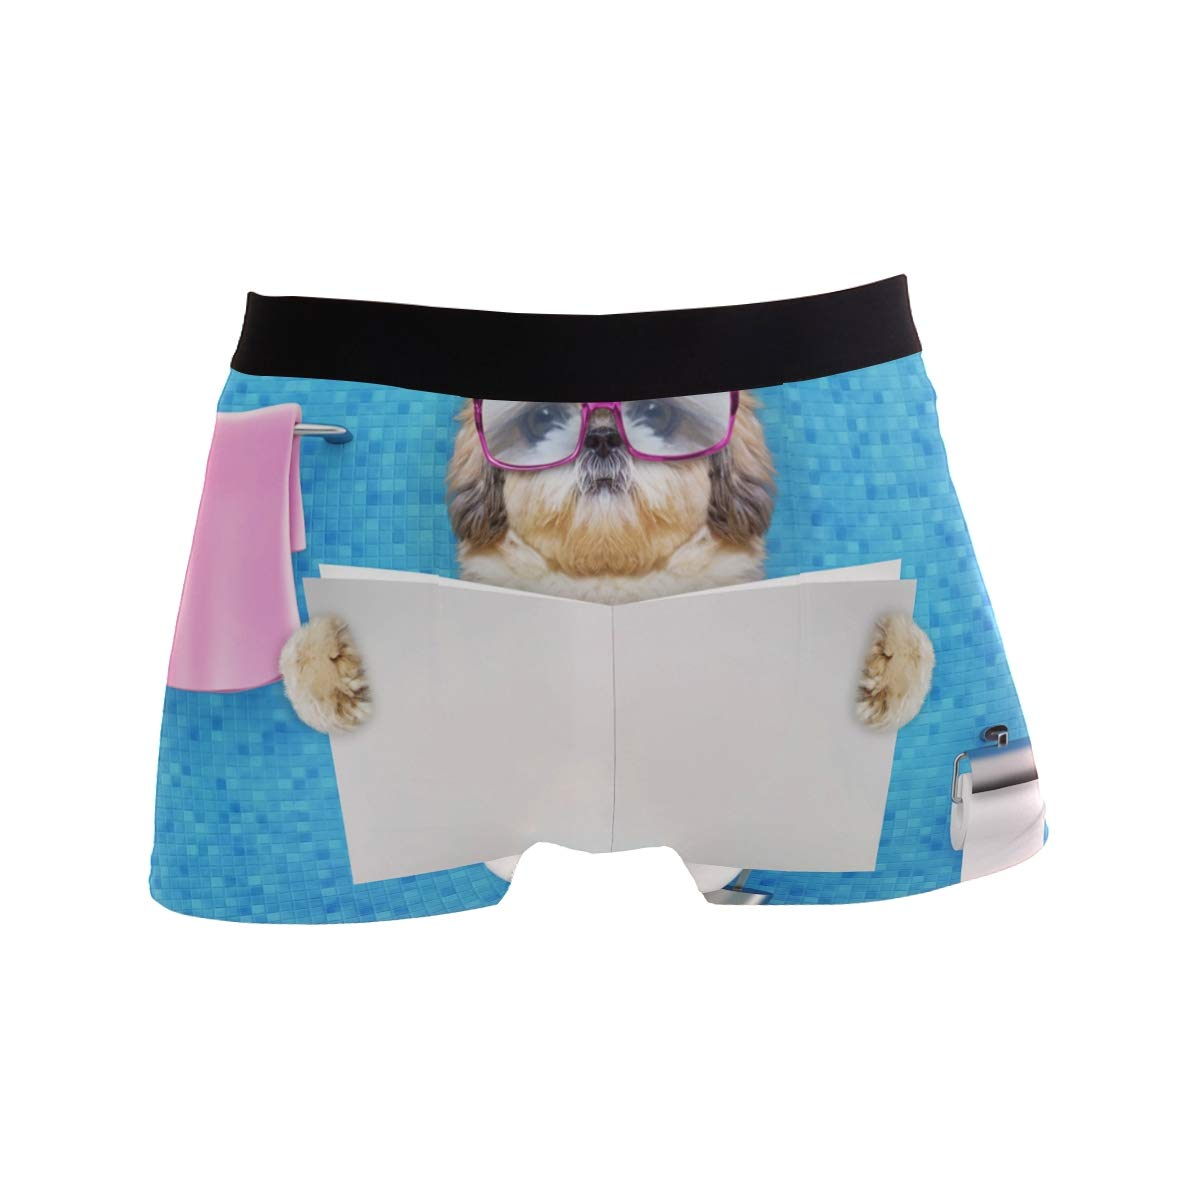 Cute Shih Tzu Dog Boxer Briefs Mens Underwear Pack Seamless Comfort Soft